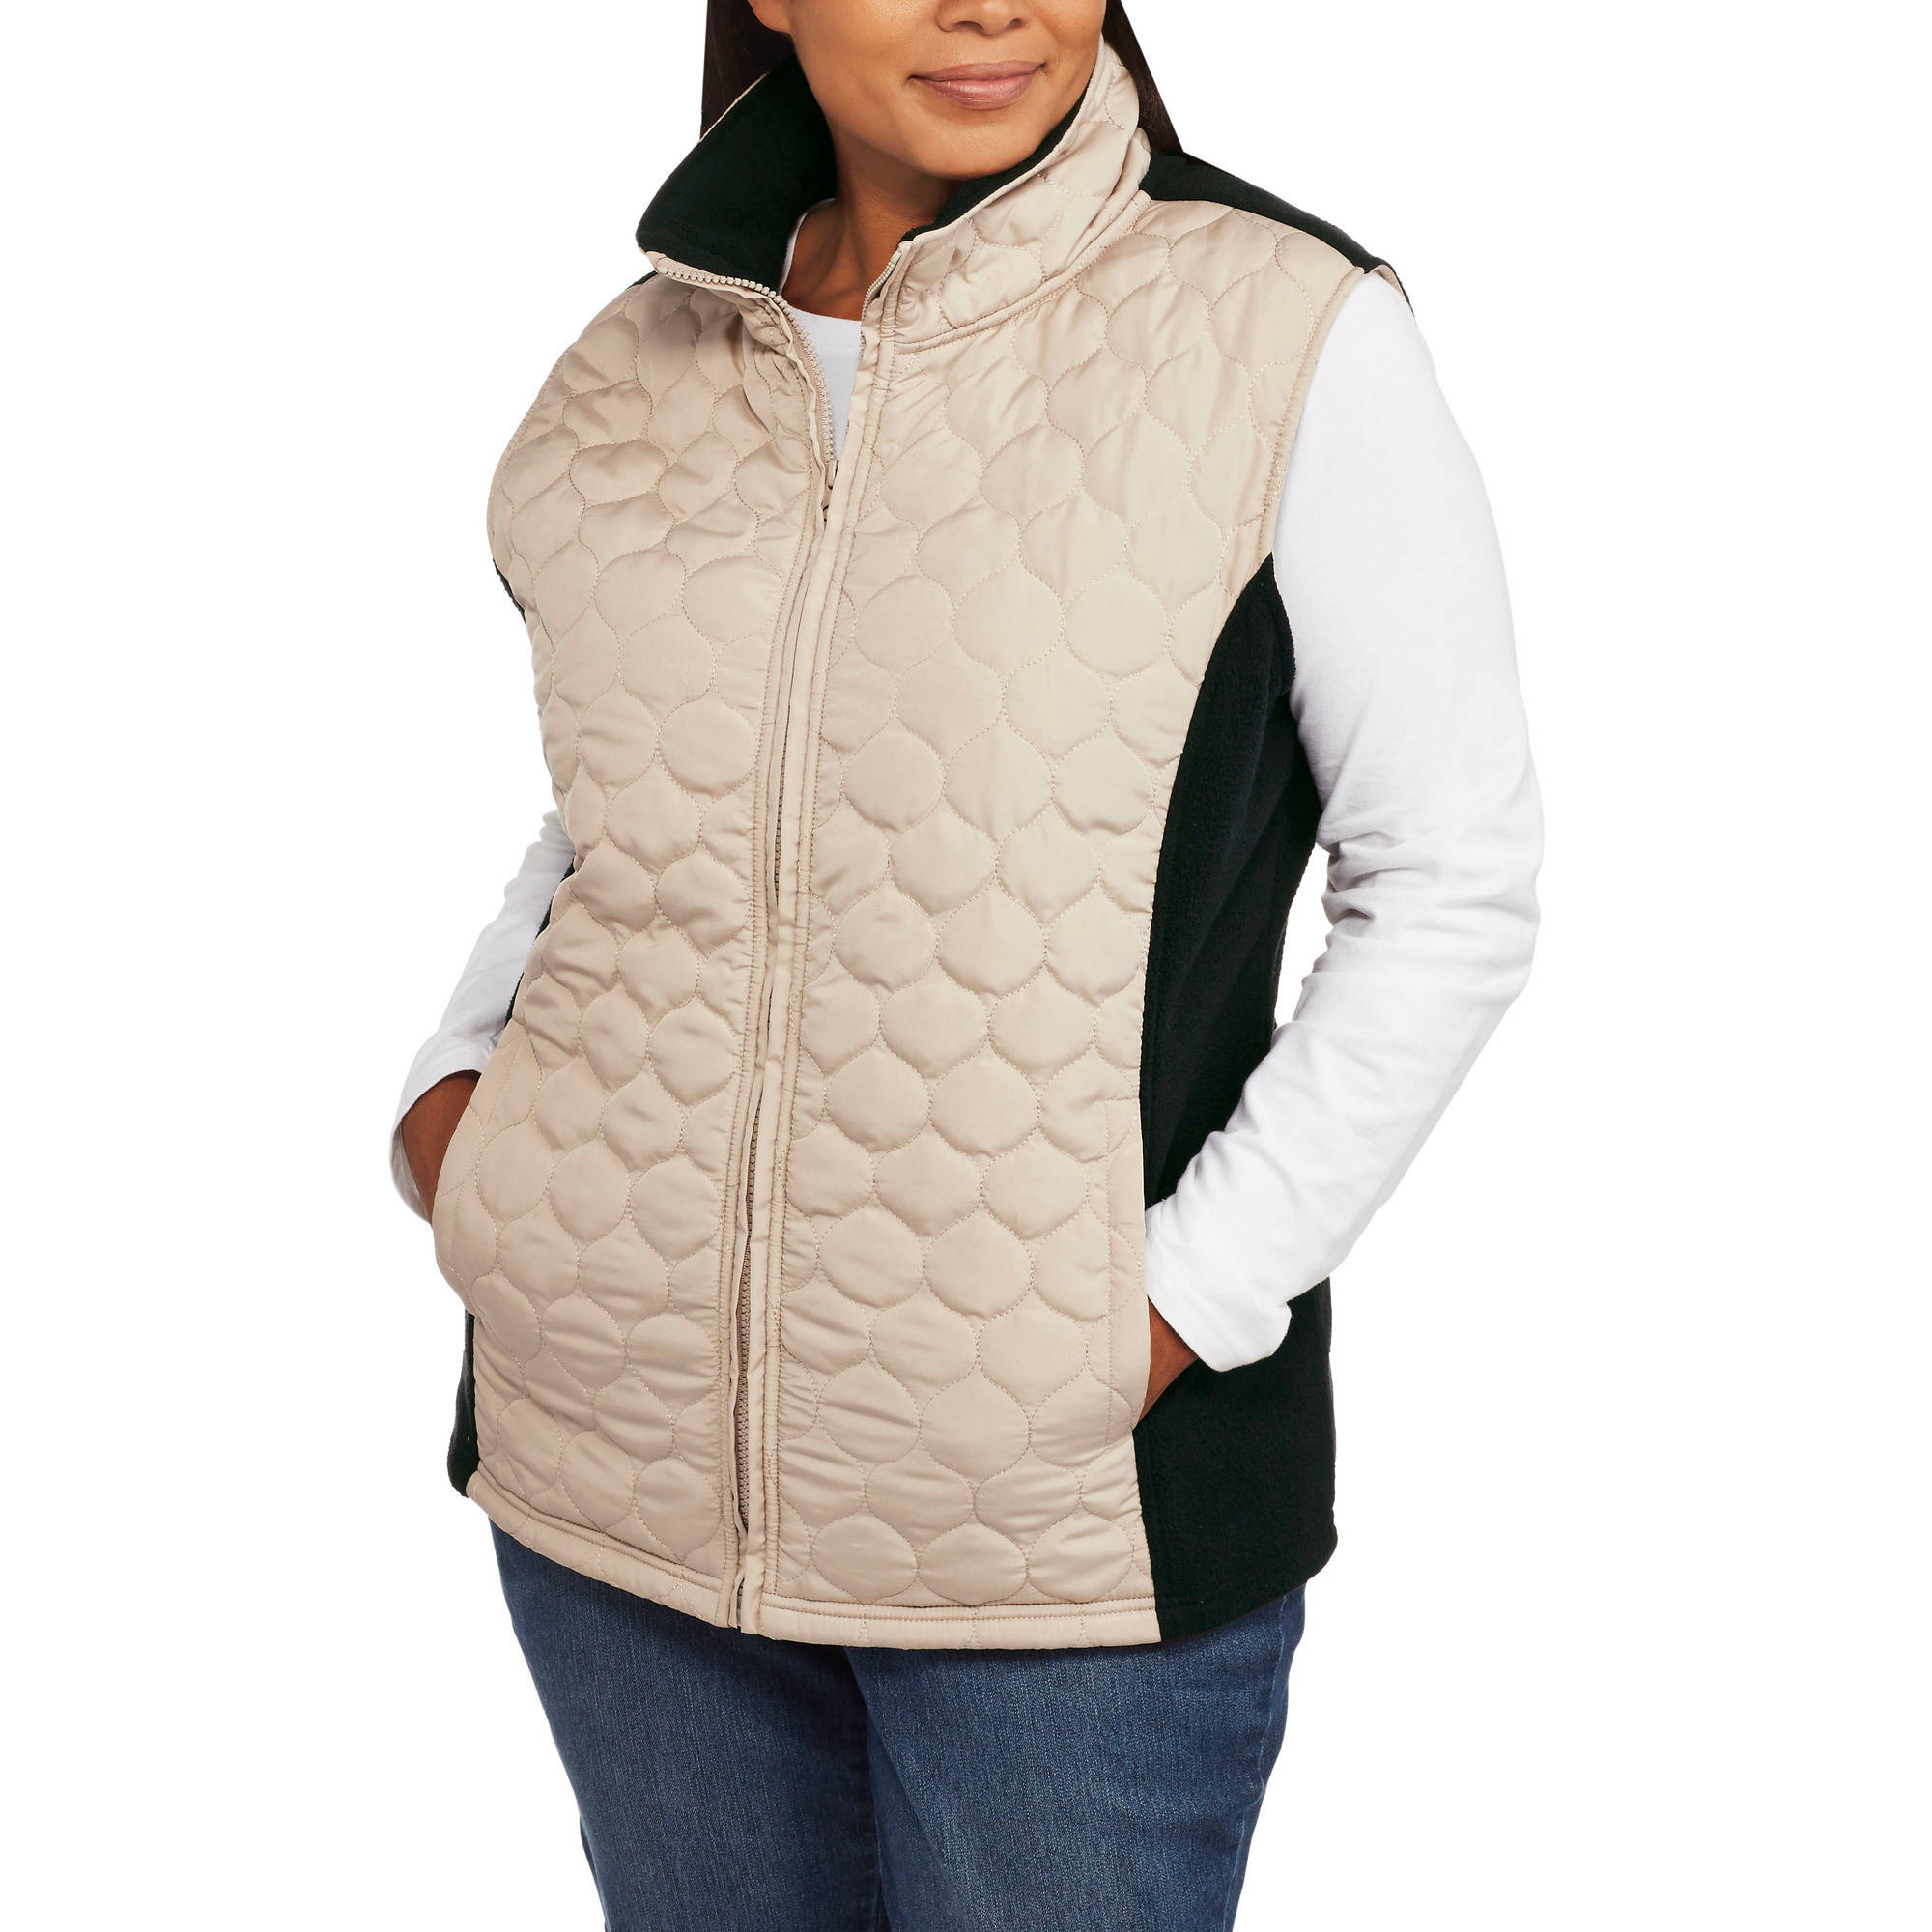 Climate Concepts Women's Plus-Size Quilted Vest with Cozy Microfleece Back